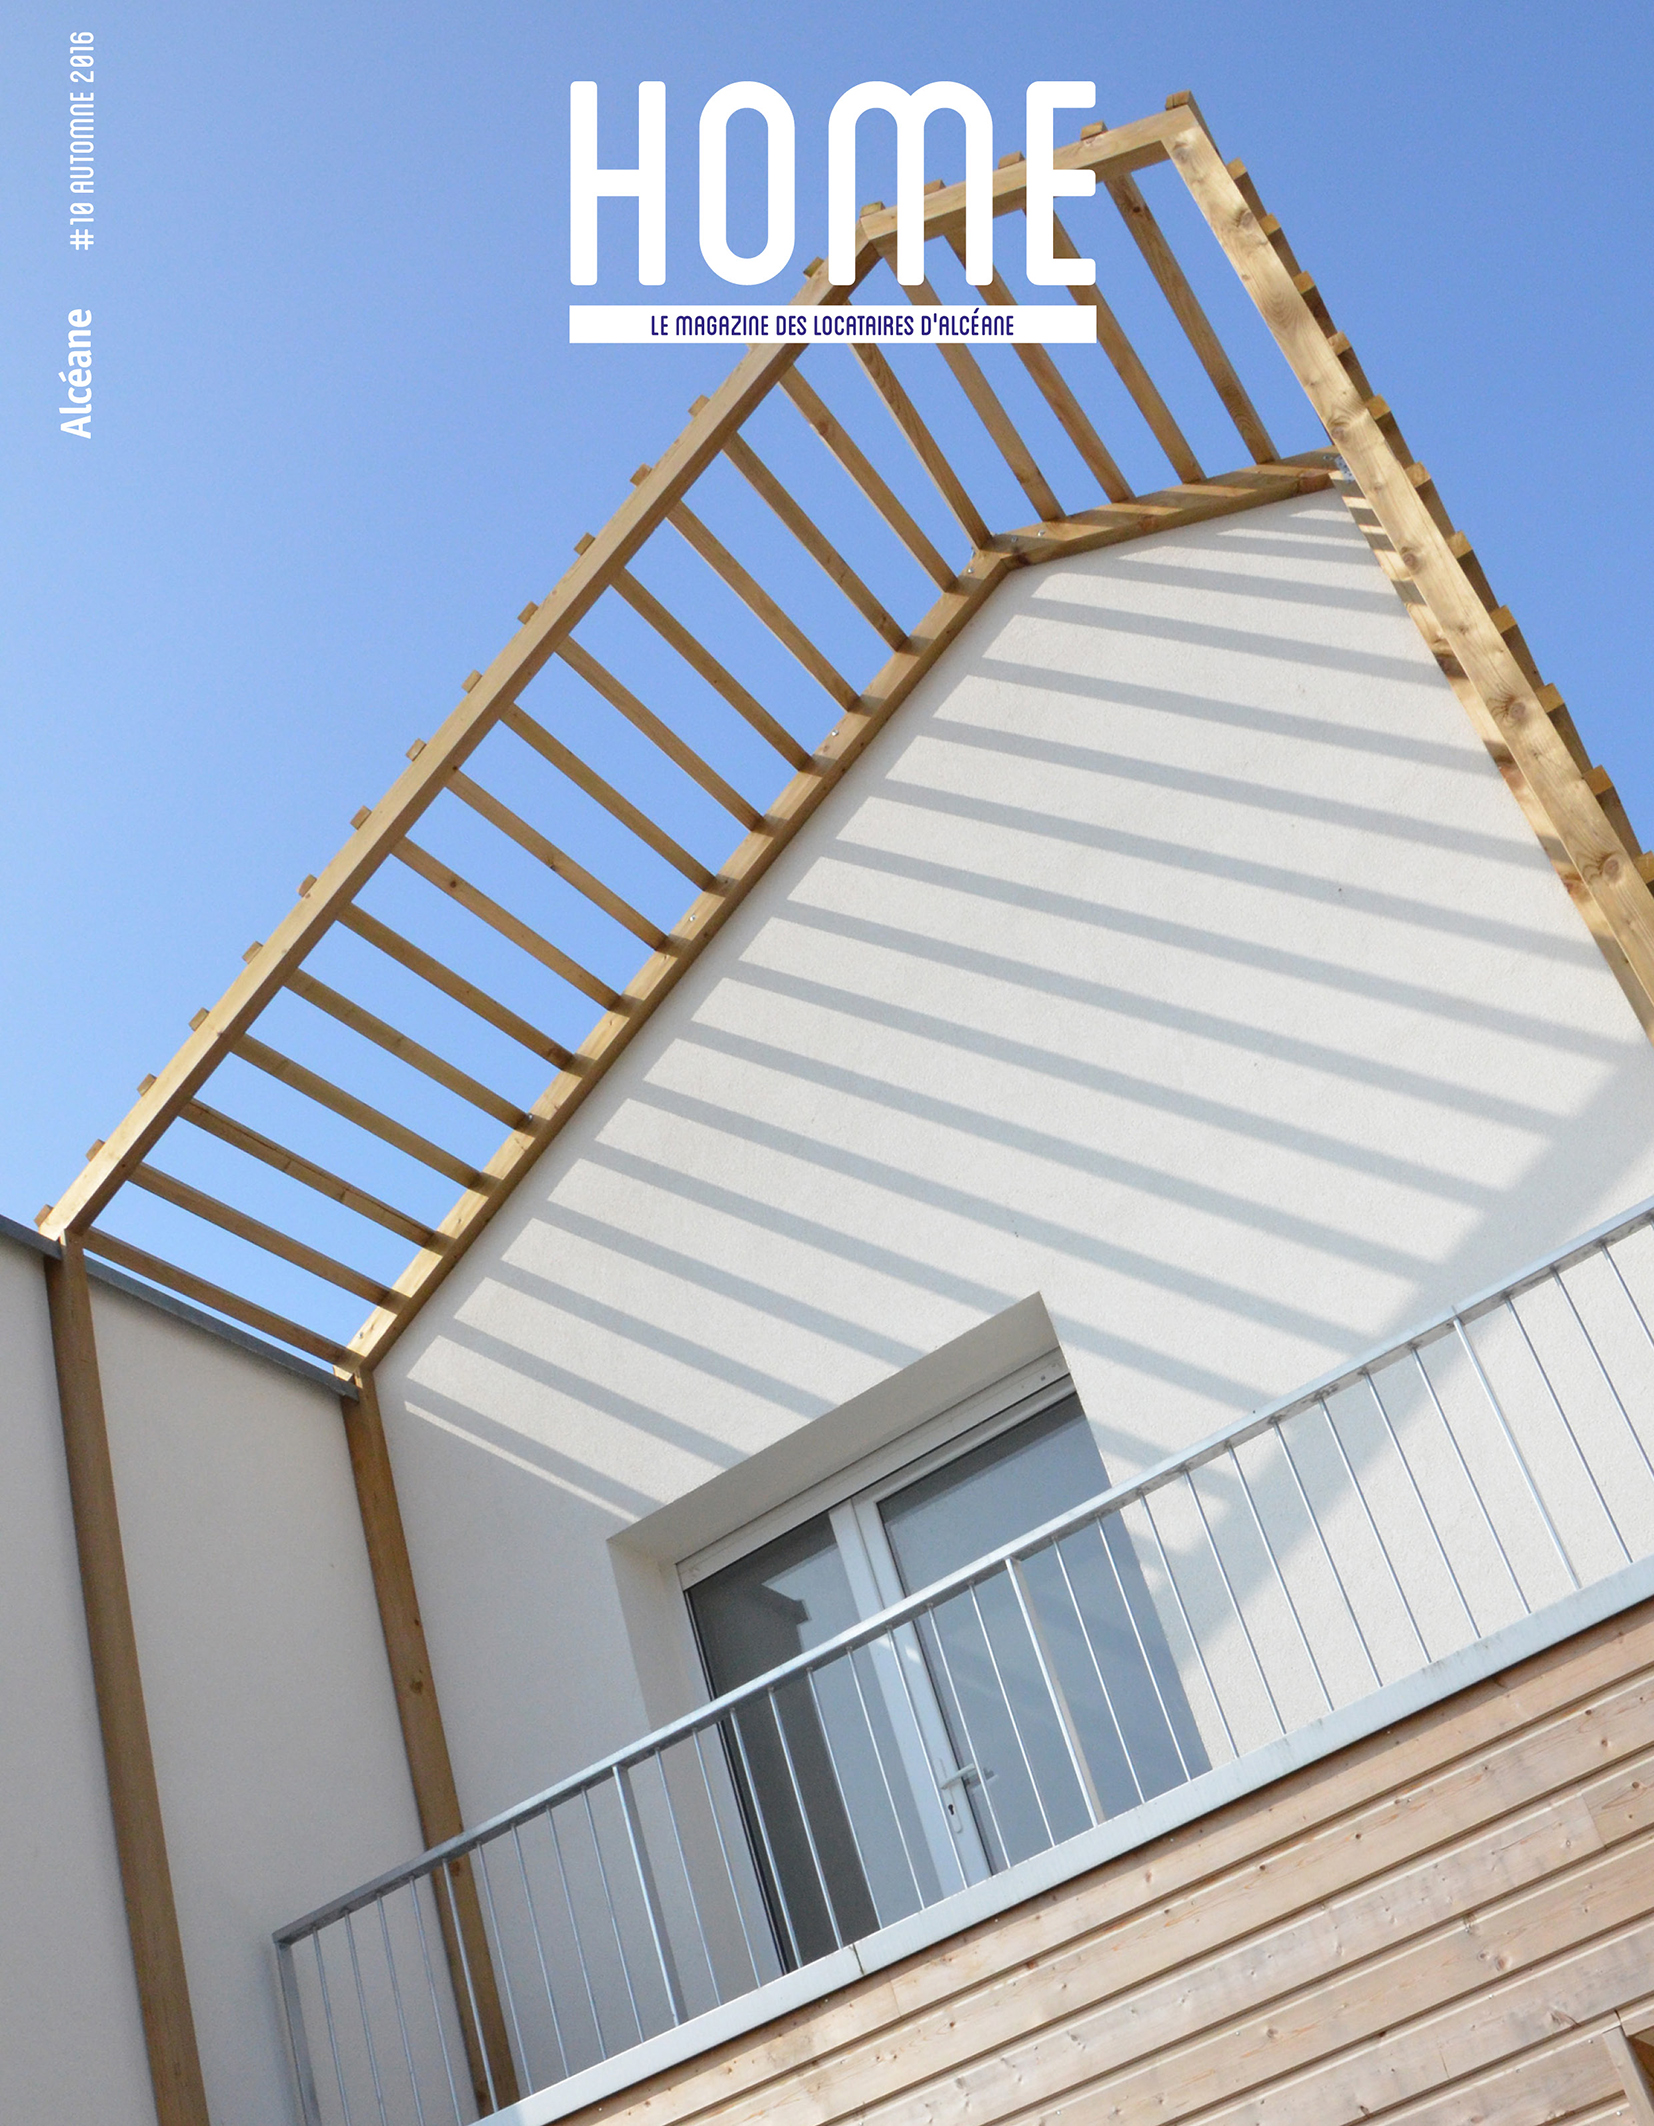 Page de couverture du magazine Home 10